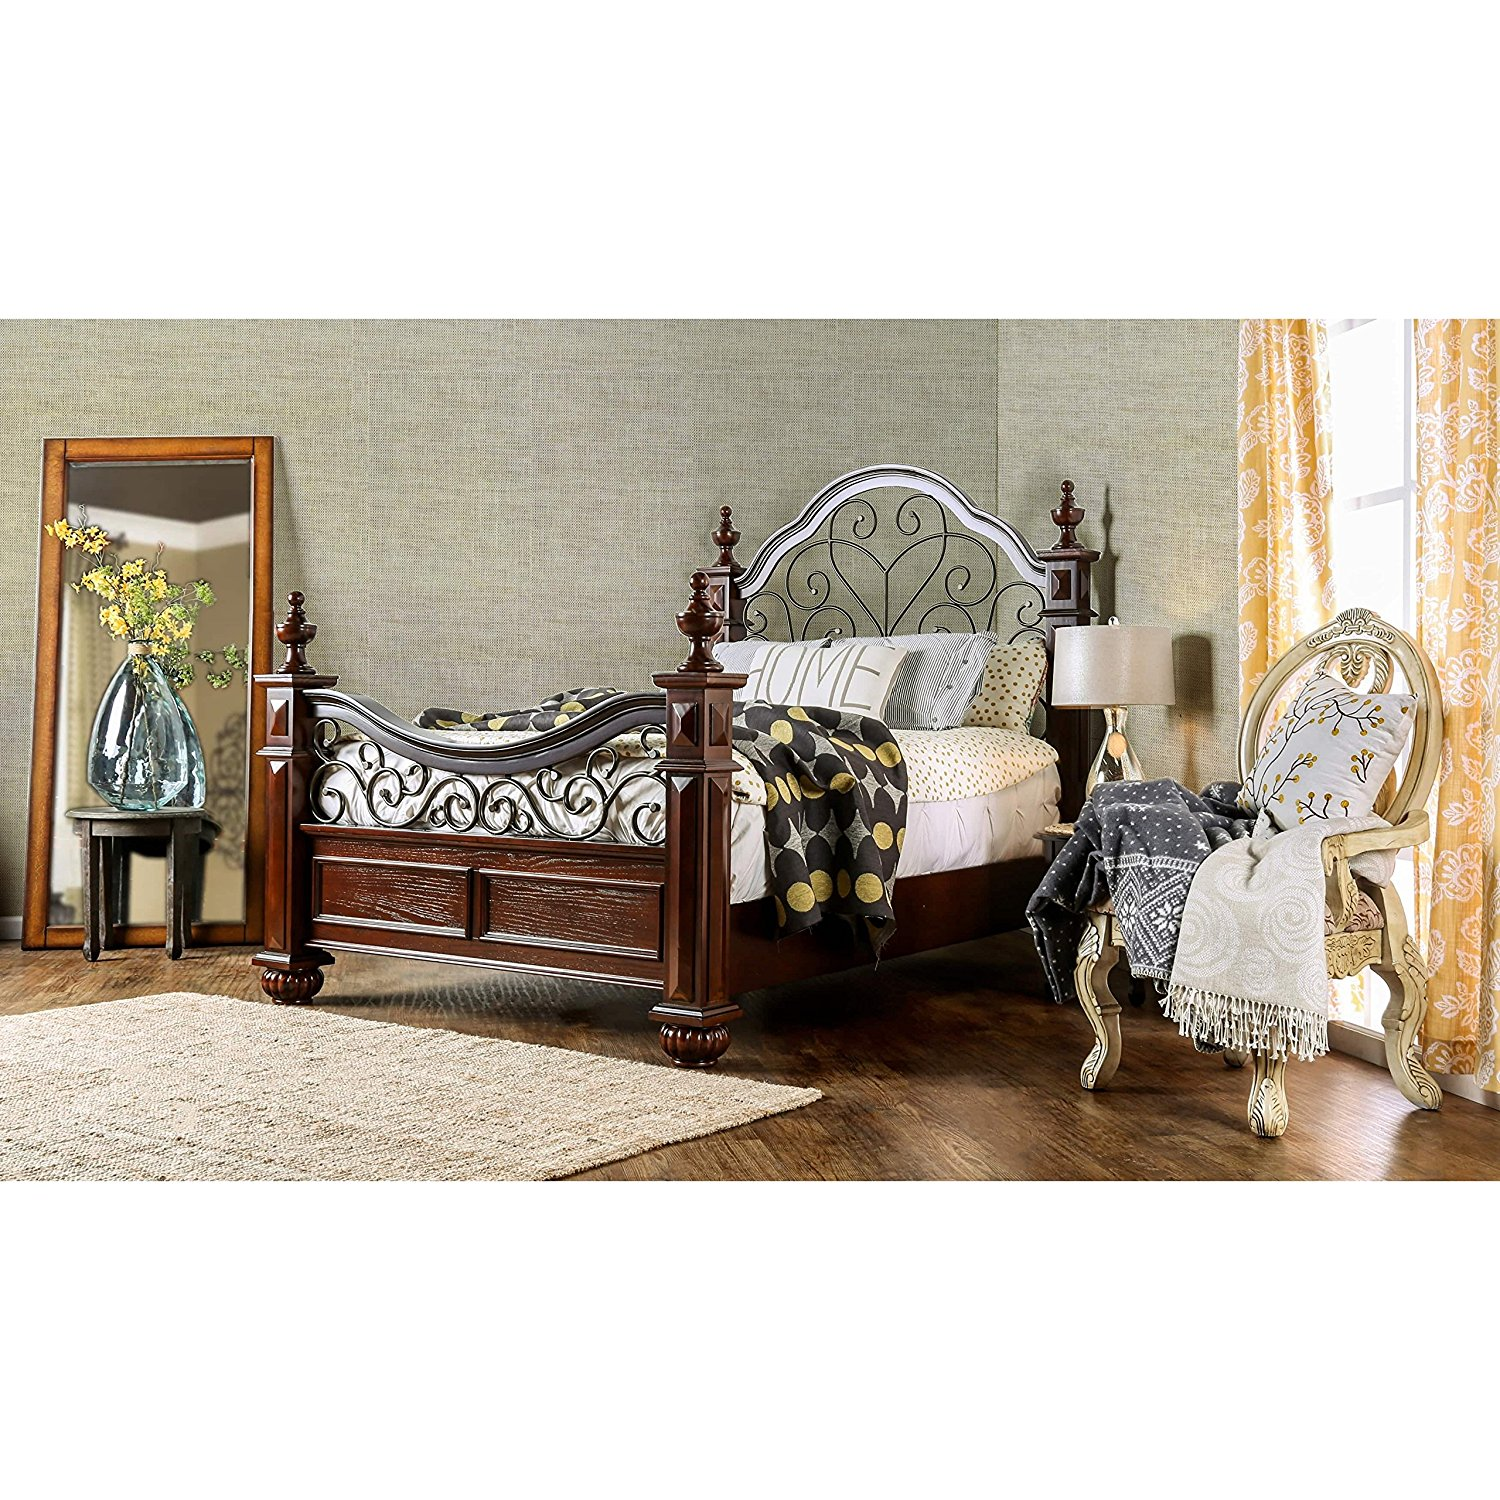 51e5df6a2bcb Get Quotations · Furniture of America Barath Antique Dark Oak Wood and Metal  Poster Bed Queen